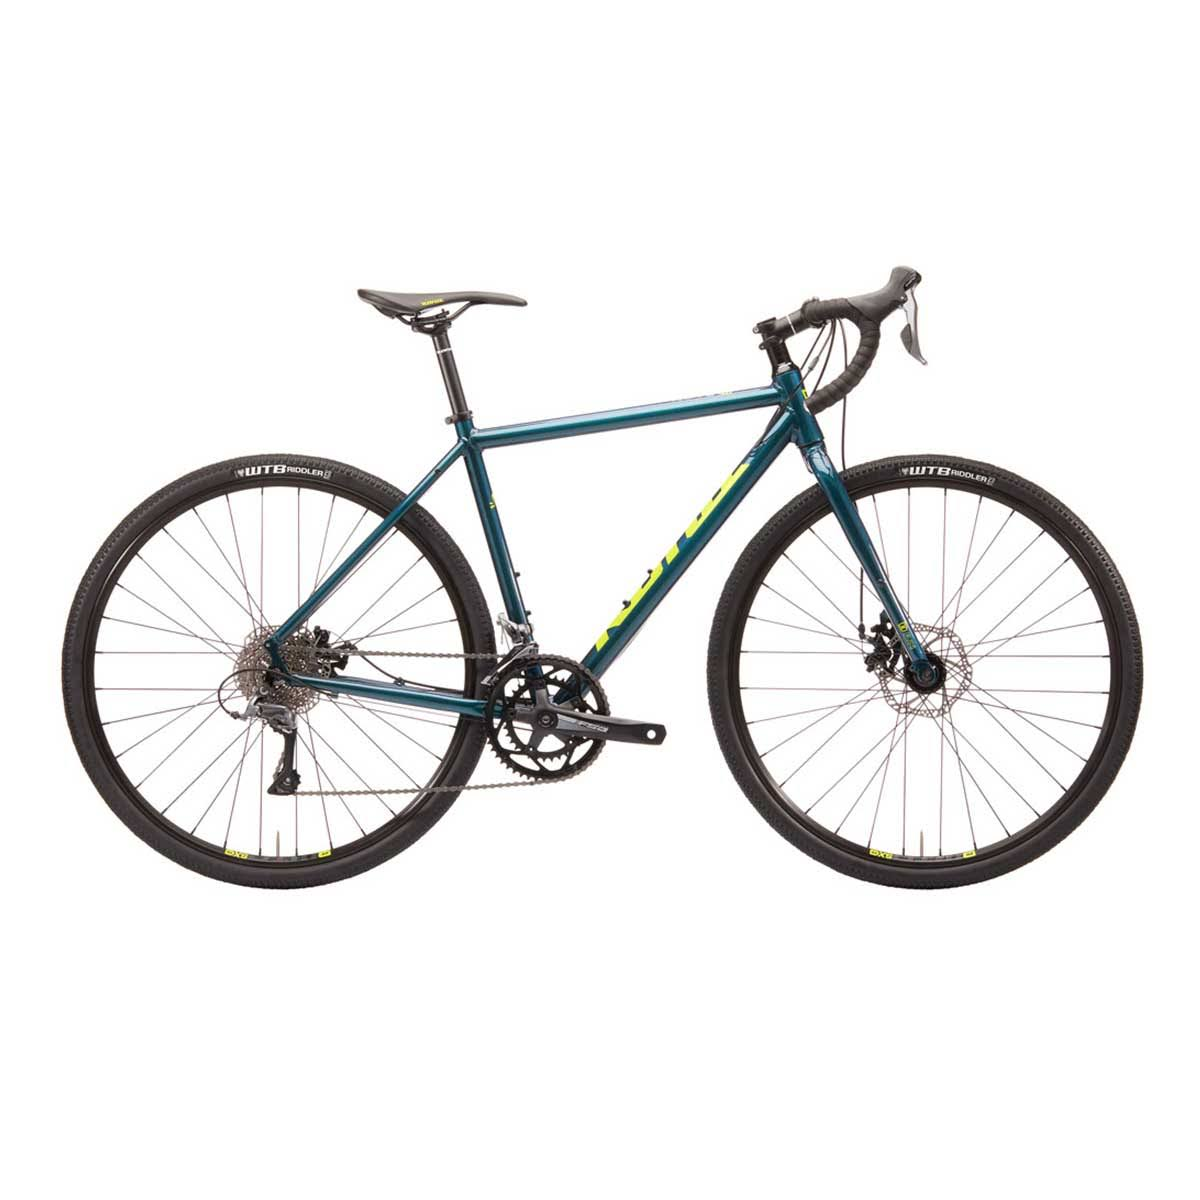 Kona Rove 2020 Road Bike | Slate Blue (54cm)